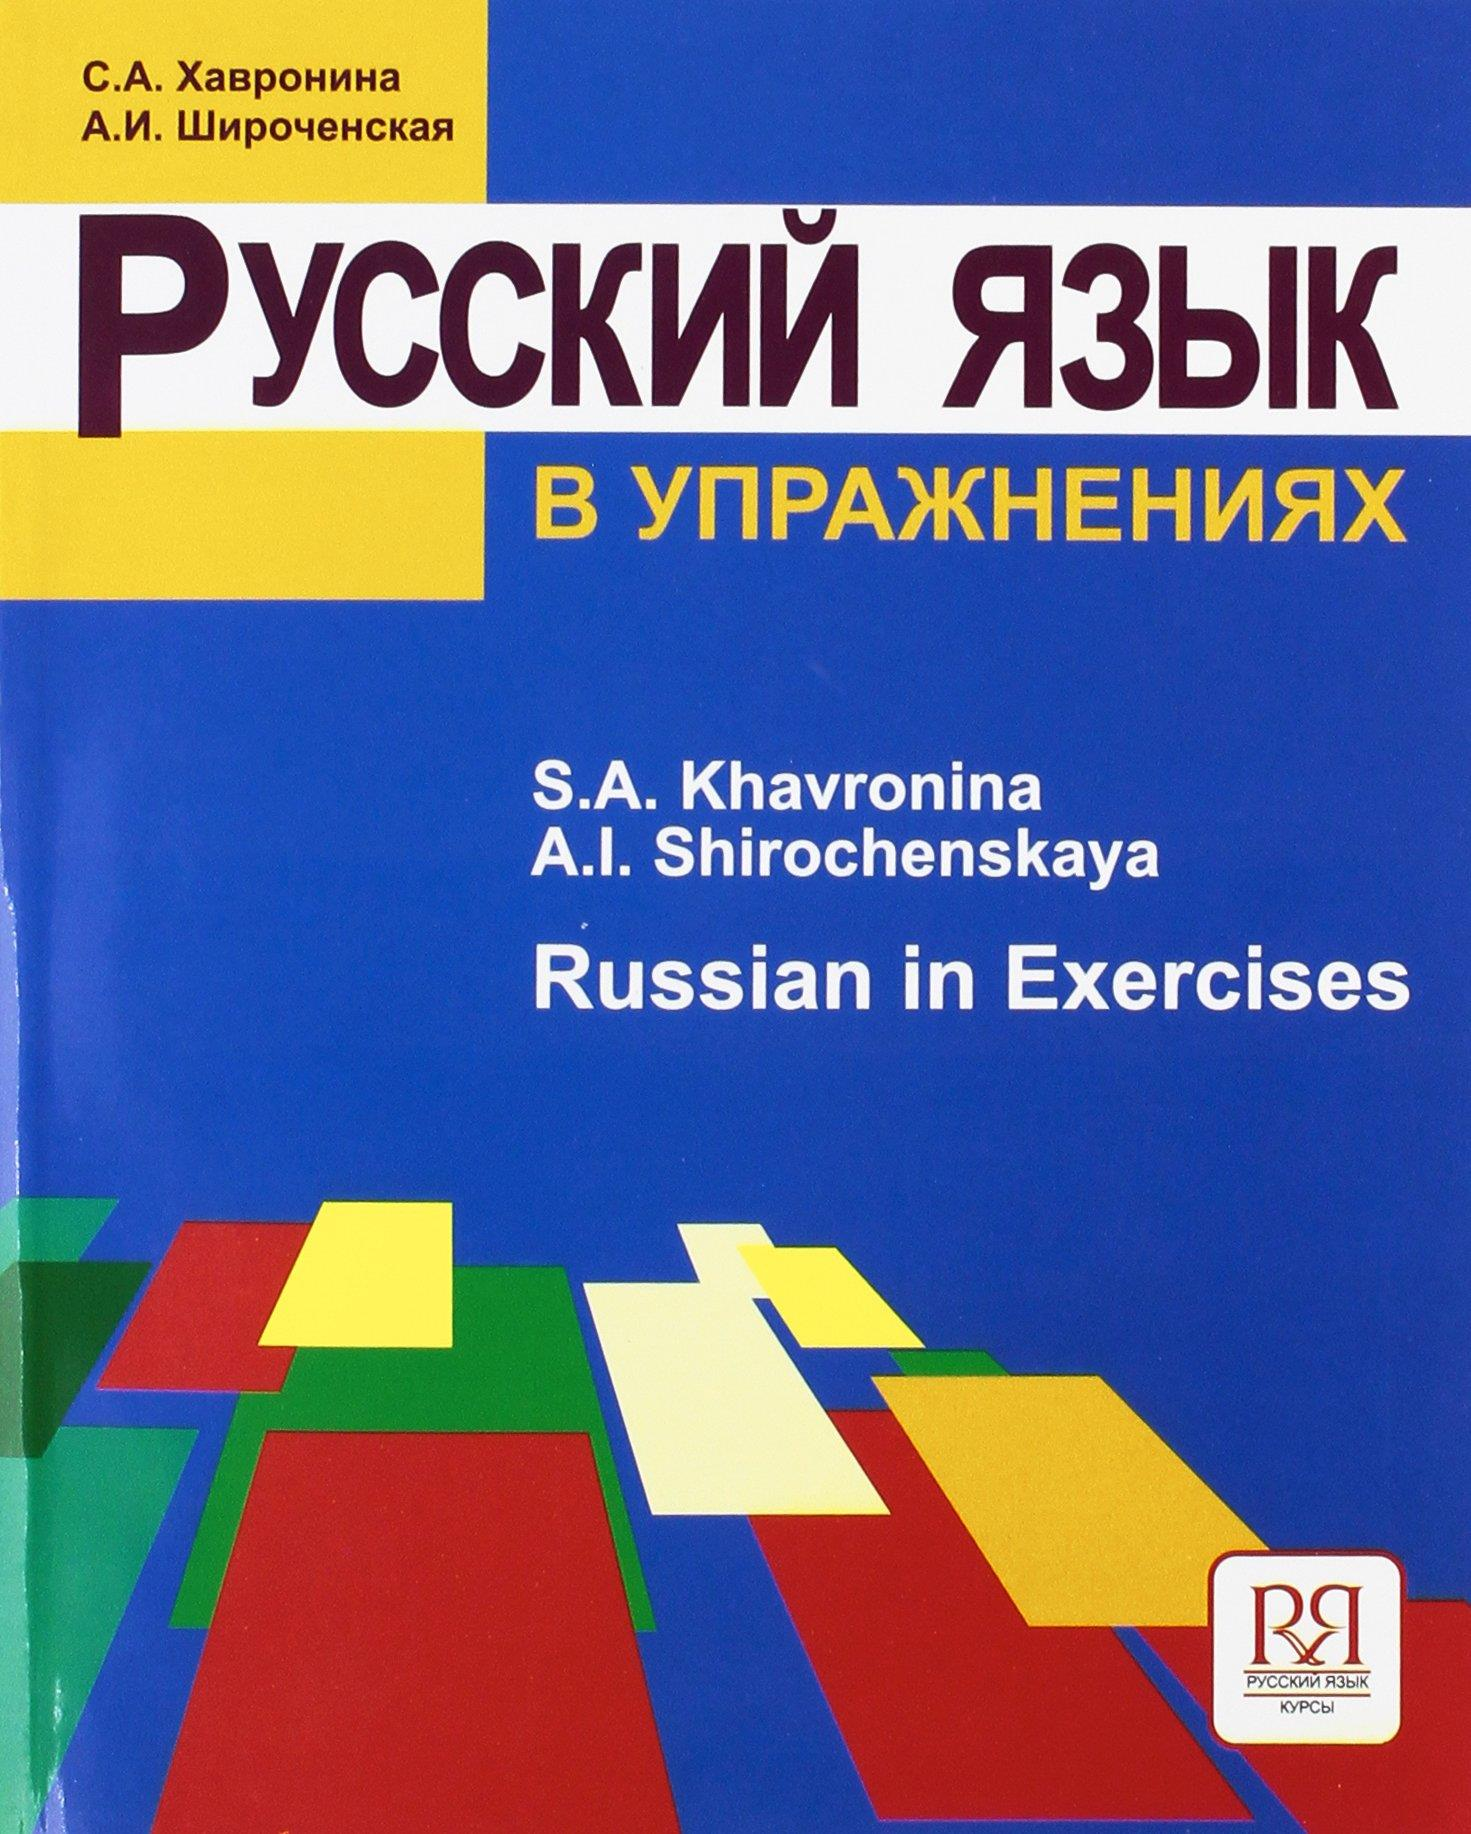 RUSSIAN IN EXERCISES